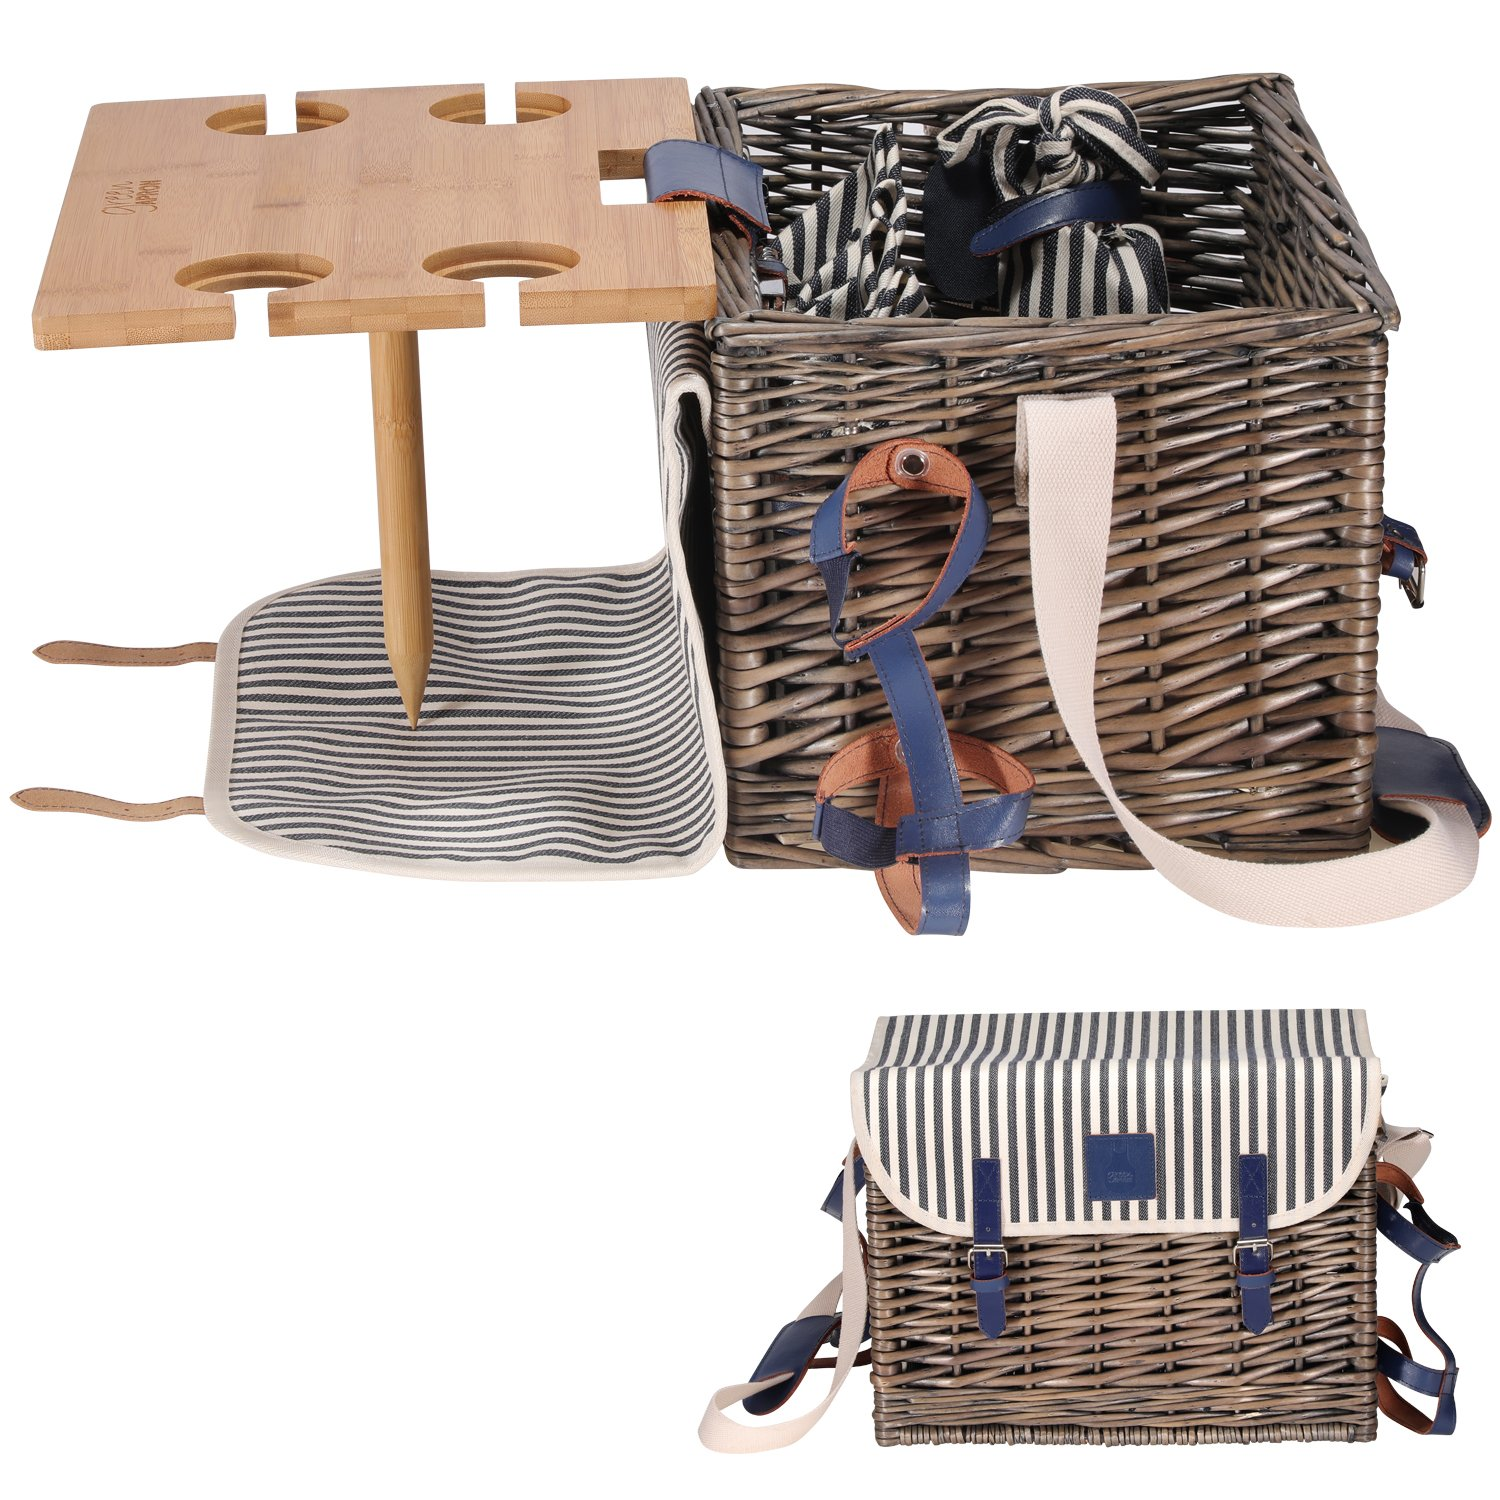 VAULTSAC Picnic Basket Set - Removable Bamboo Table - Cotton Canvas Top Cover [4 Person Set] Waterproof Picnic Blanket, Ceramic Plates, Metal Flatware, Wine Glasses Wooden Bottle Opener Picnic Set by VAULTSAC